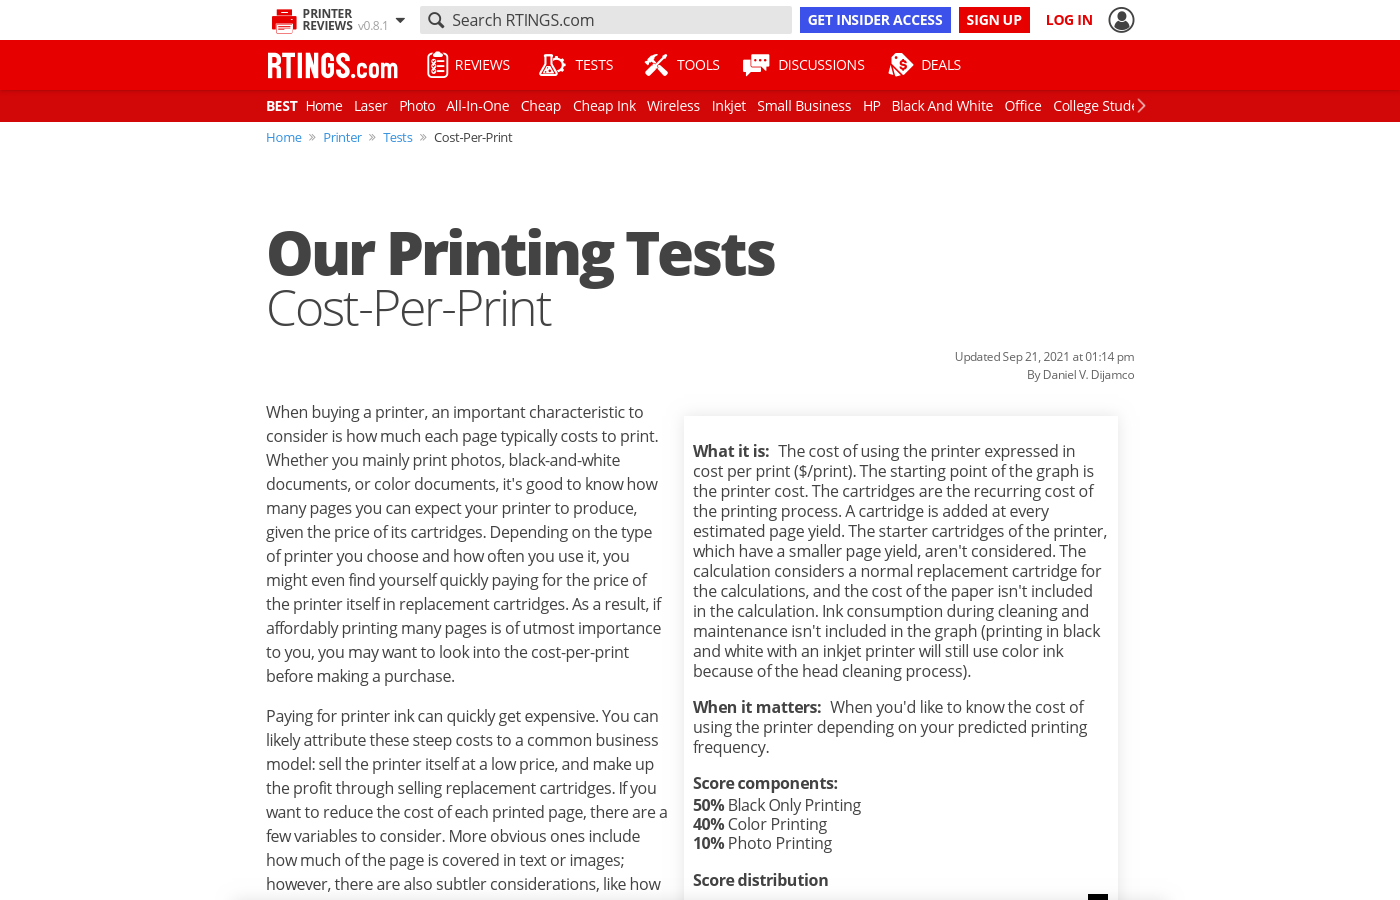 Our Tests: Cost-Per-Print